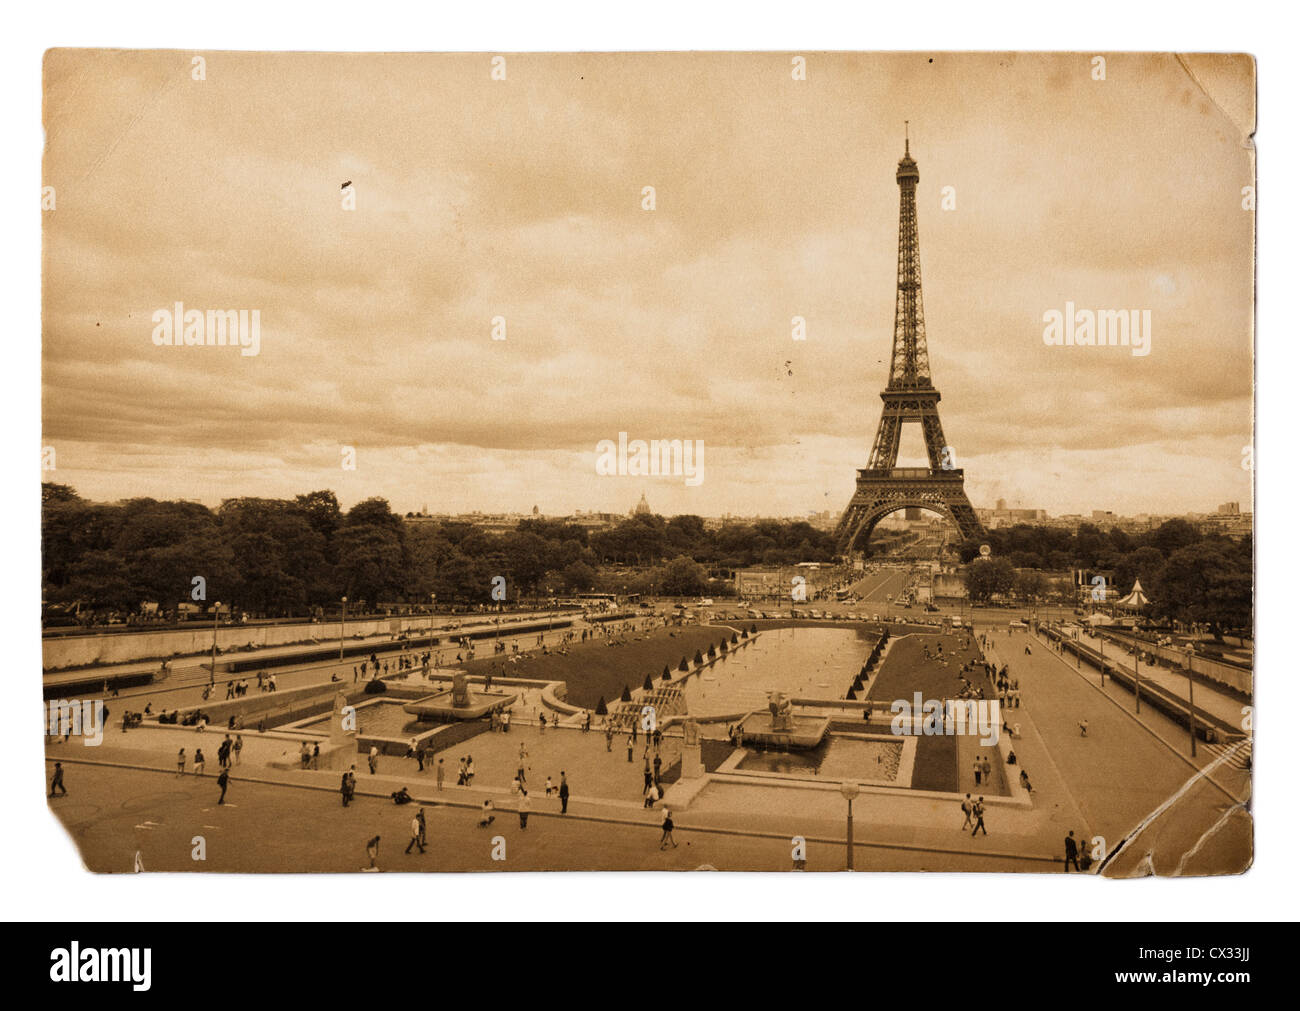 vintage sepia toned postcard of Eiffel tower in Paris - Stock Image